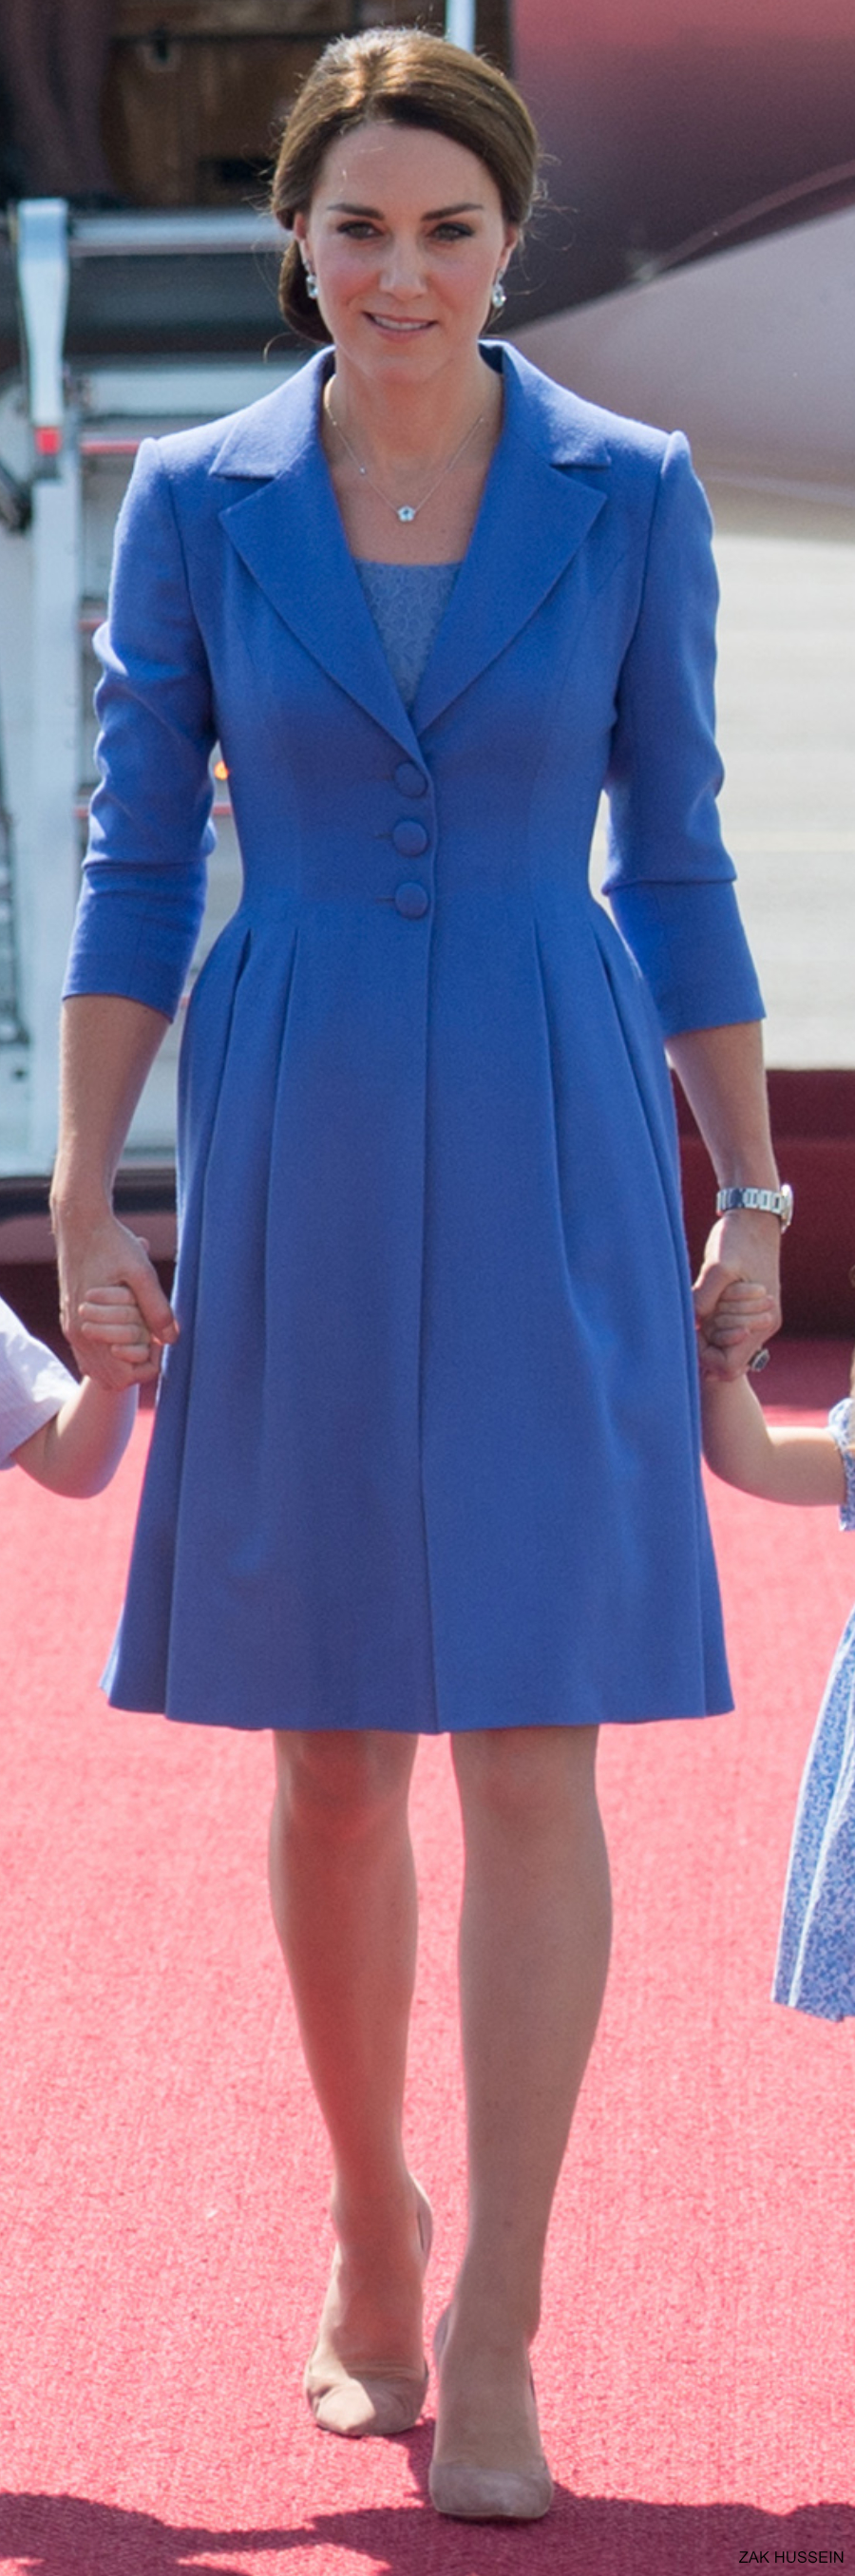 Kate Middleton wearing her cornflower blue Catherine Walker and Co coat in Berlin, Germany